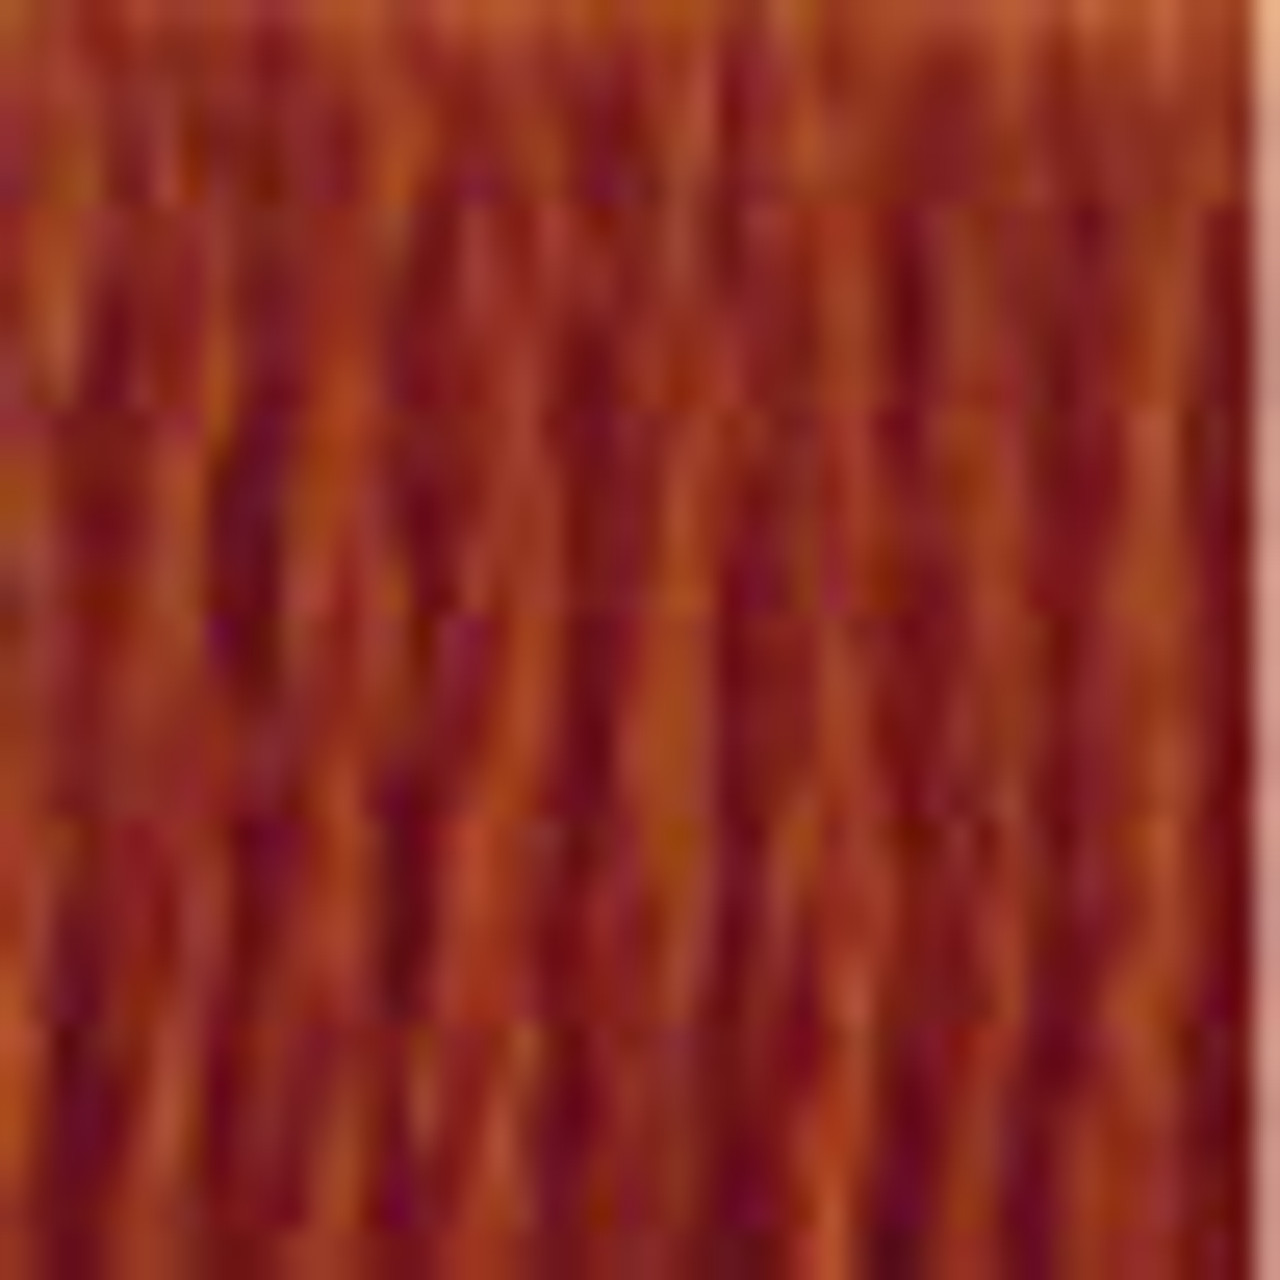 DMC # 433 Medium Brown Floss / Thread